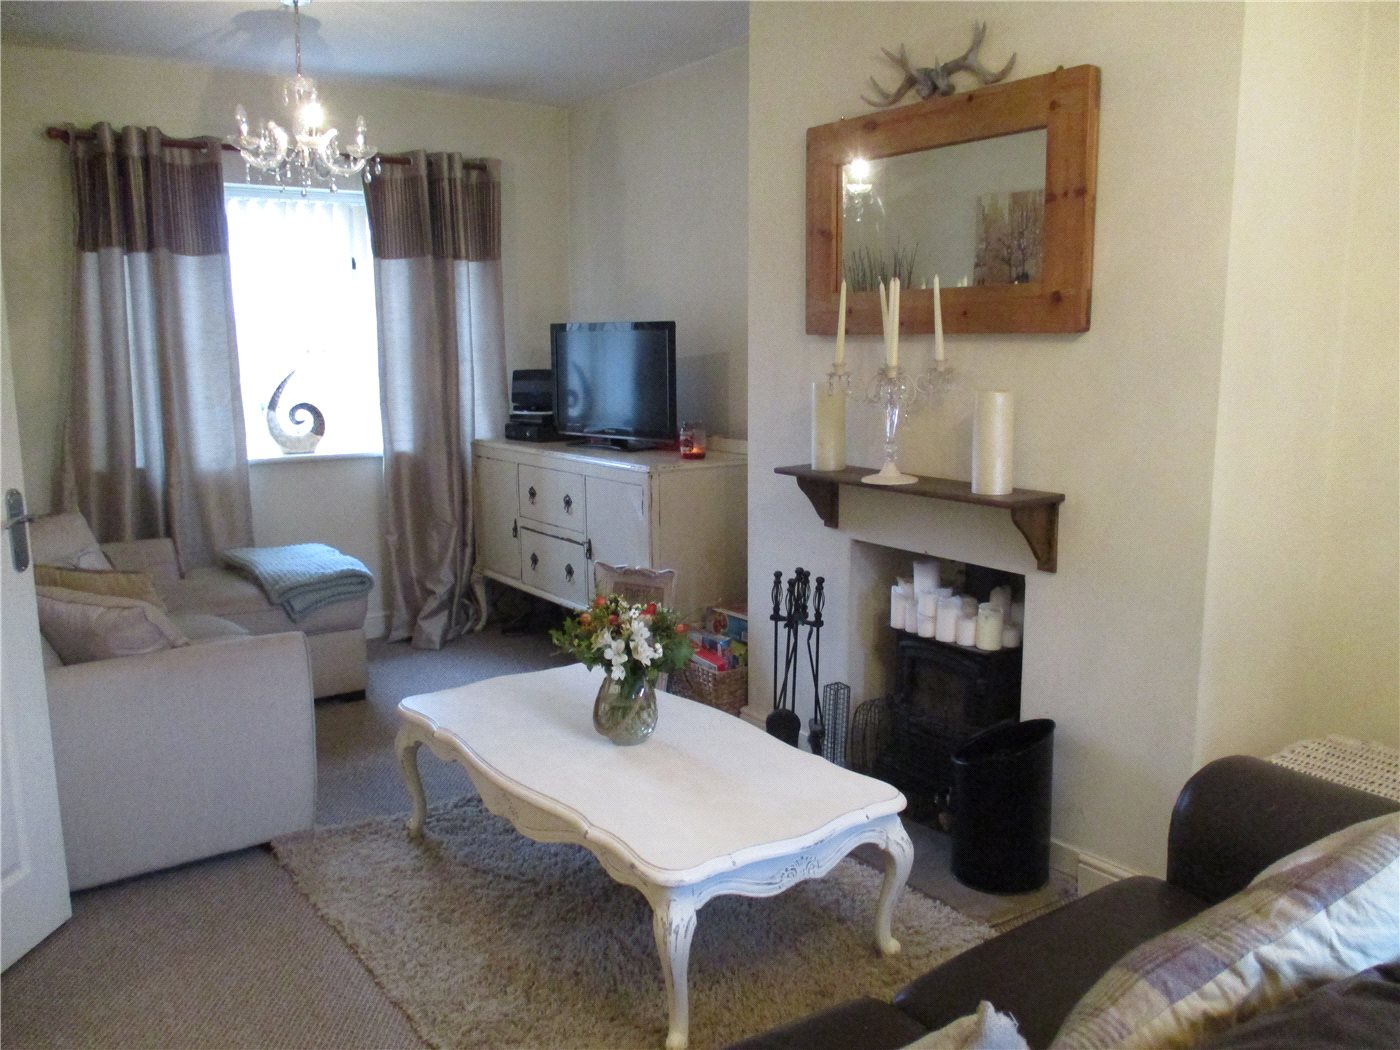 4 Bedrooms Detached House for rent in The Stackyard, Croxton Kerrial, Grantham, Lincs, NG32